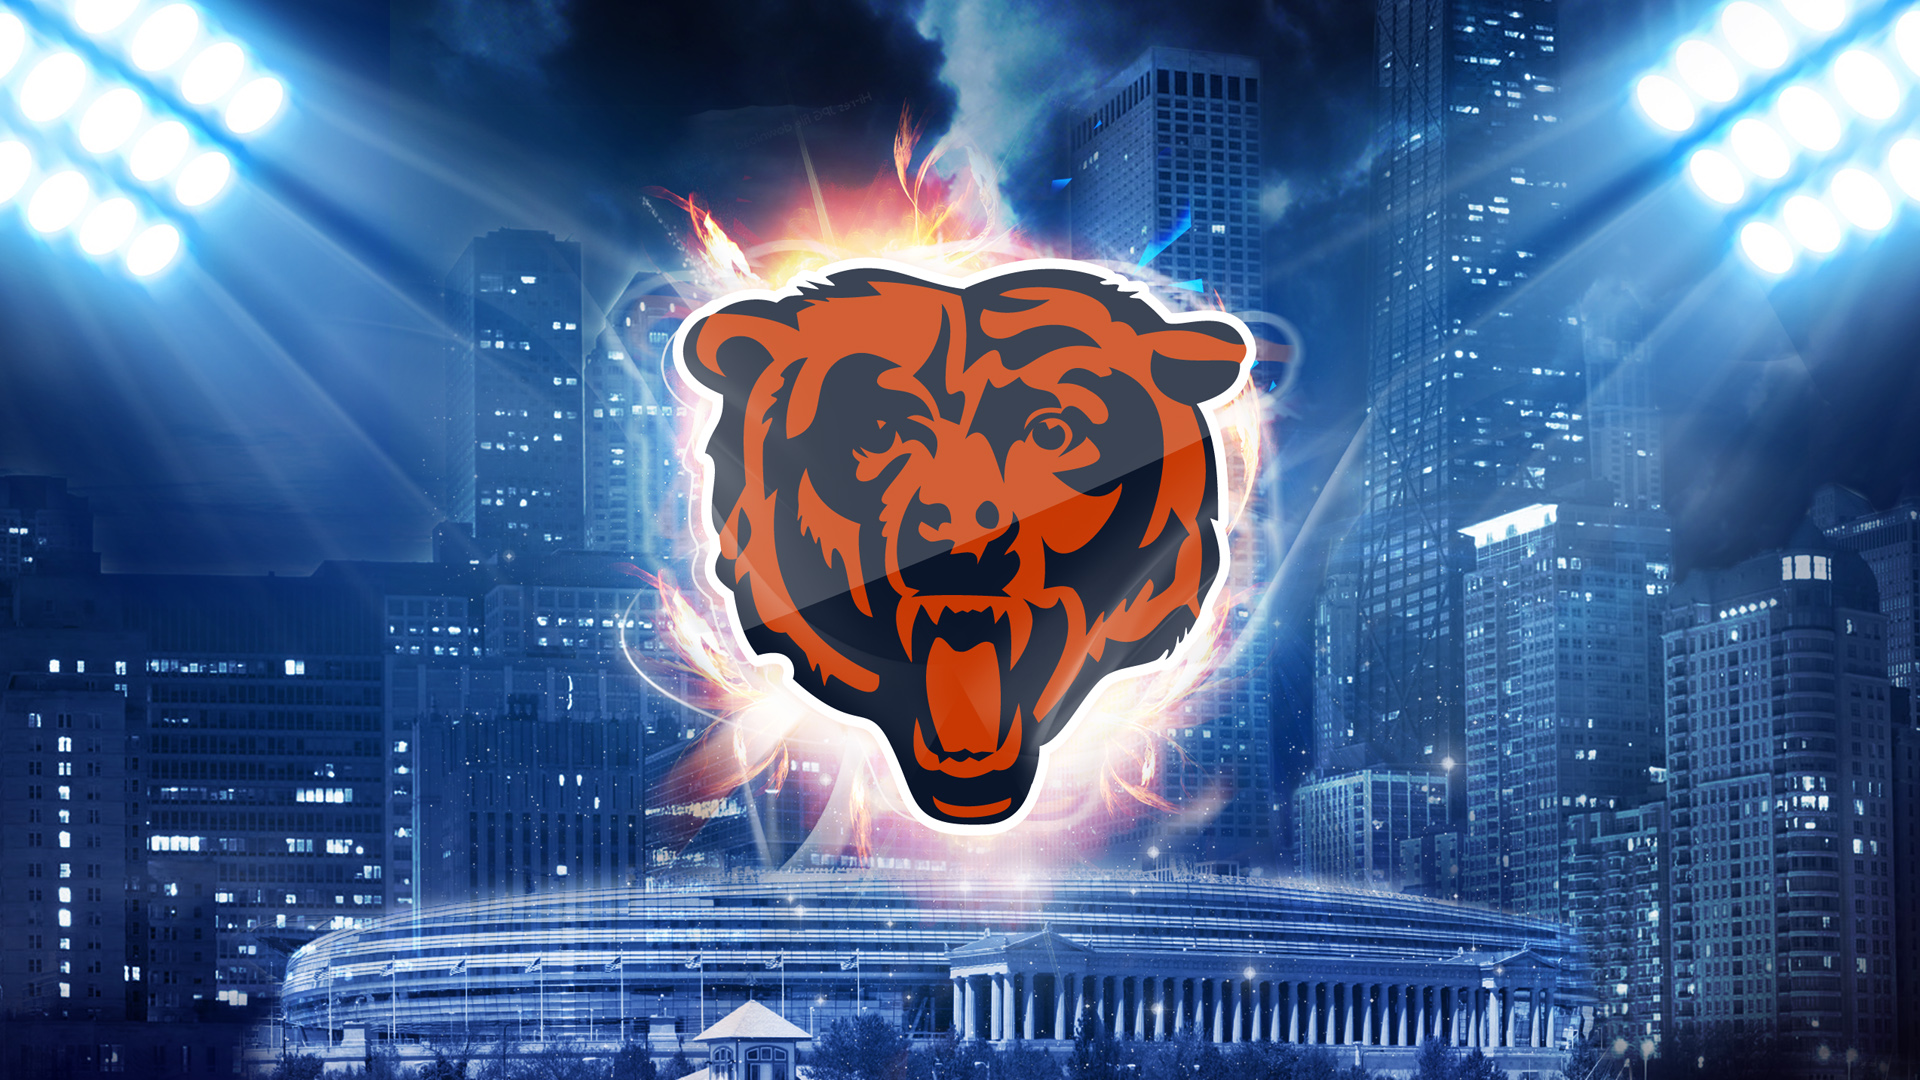 1920x1080 - Chicago Bears Wallpapers 6